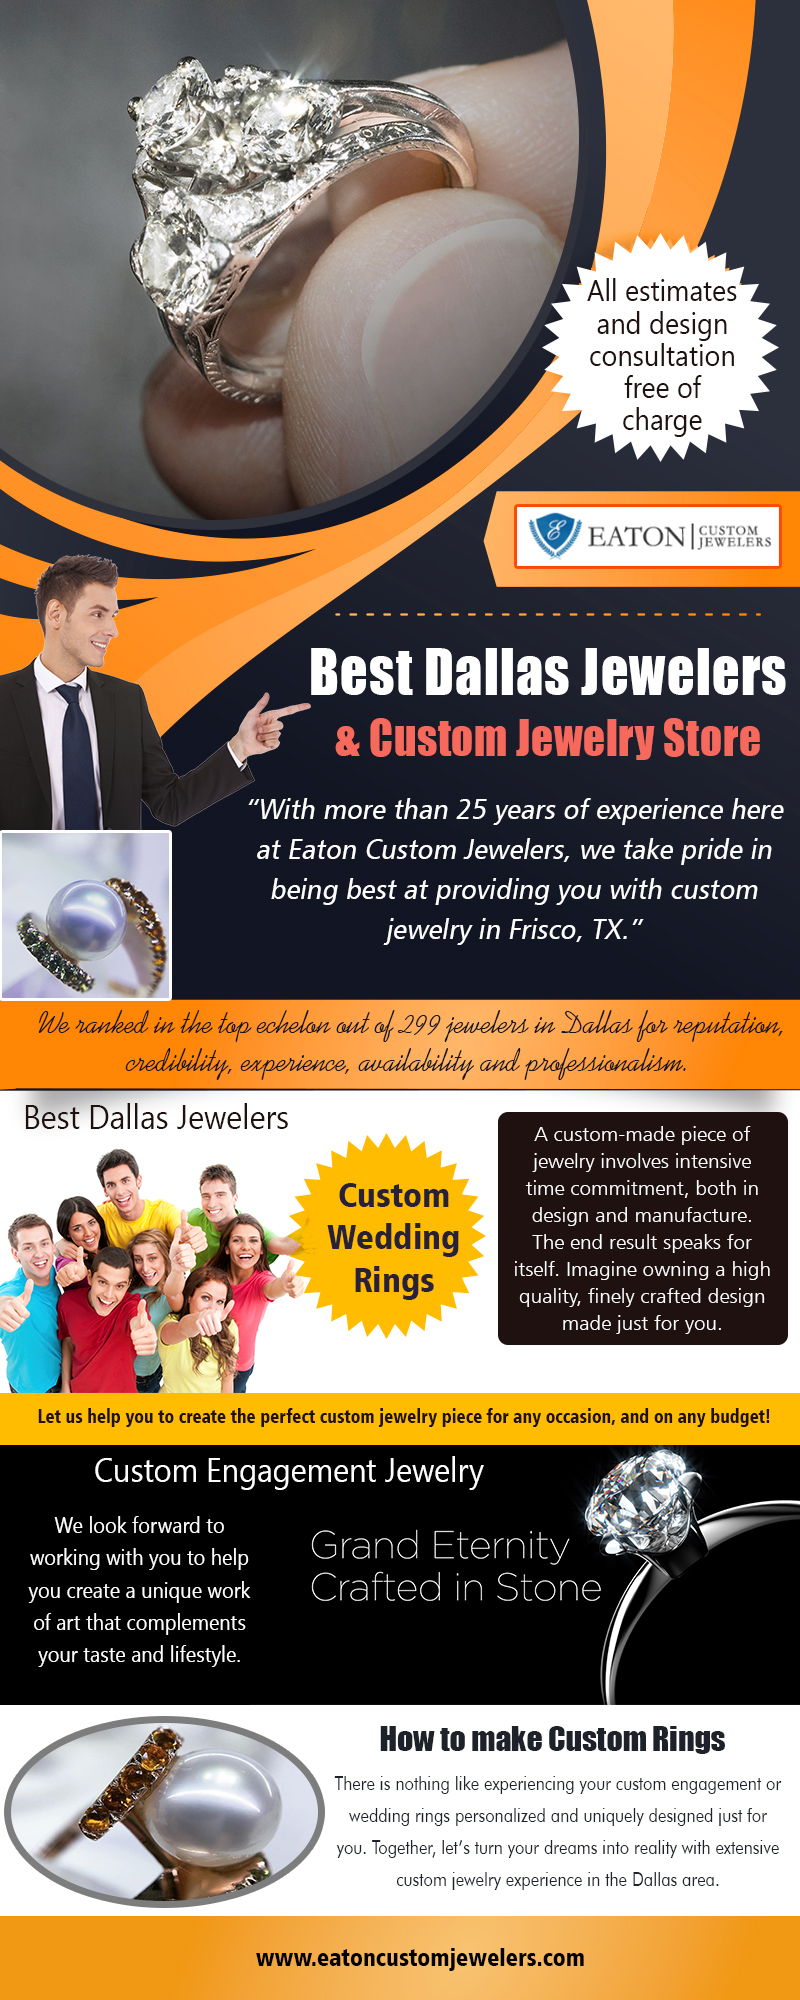 Best Dallas Jewelers & Custom Jewelry Store